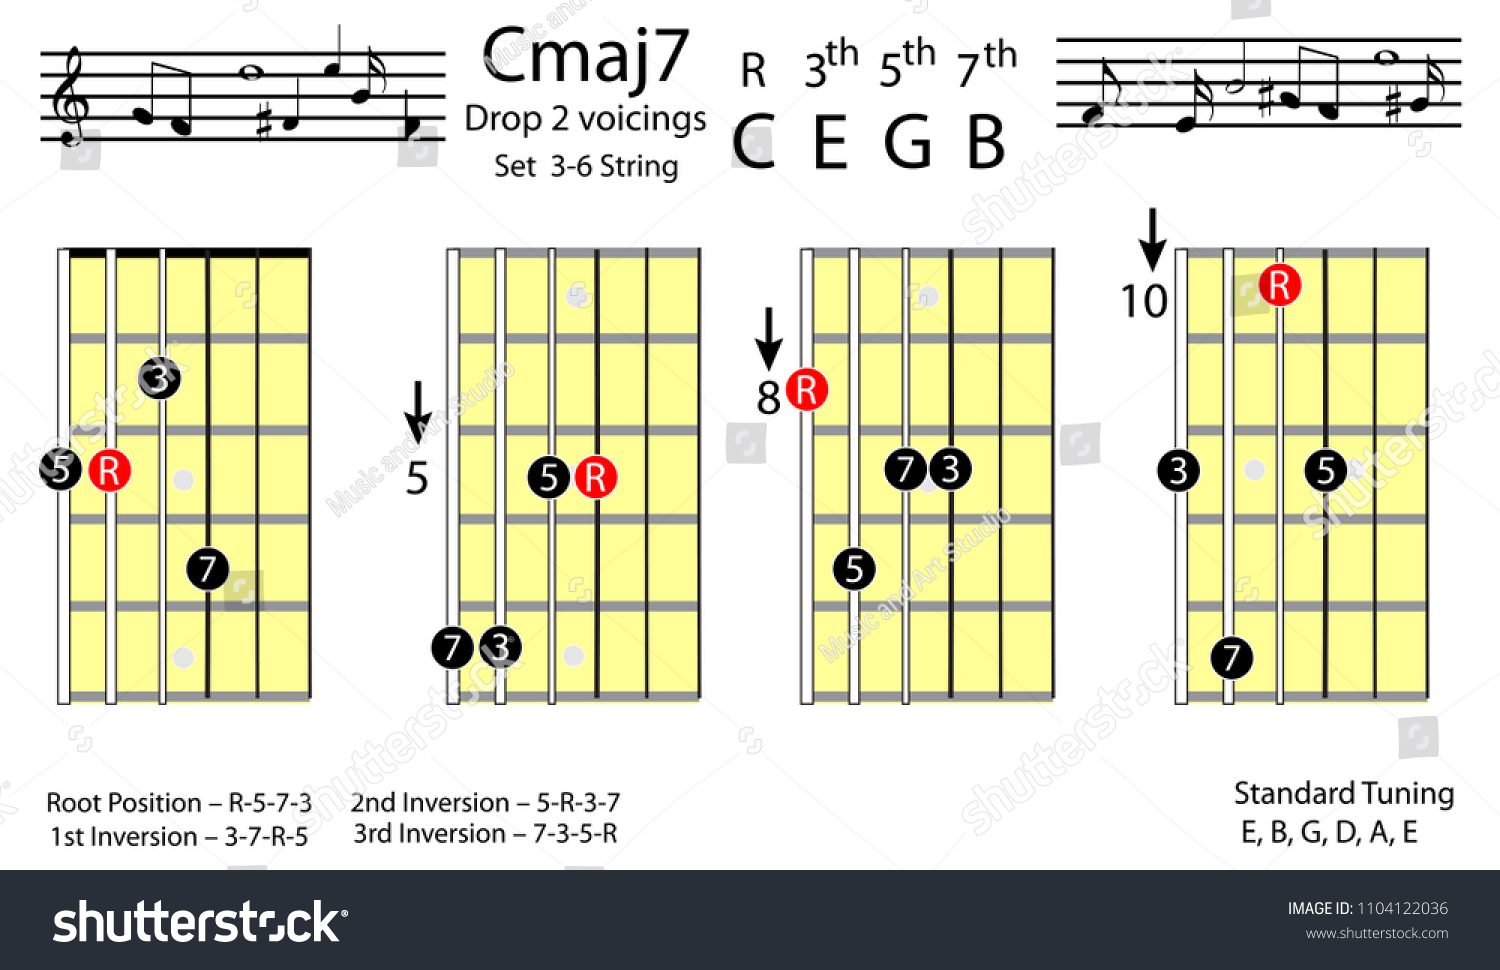 Guitar Chords C Major 7 Drop 2 Voicing Chord Stock Vector Royalty